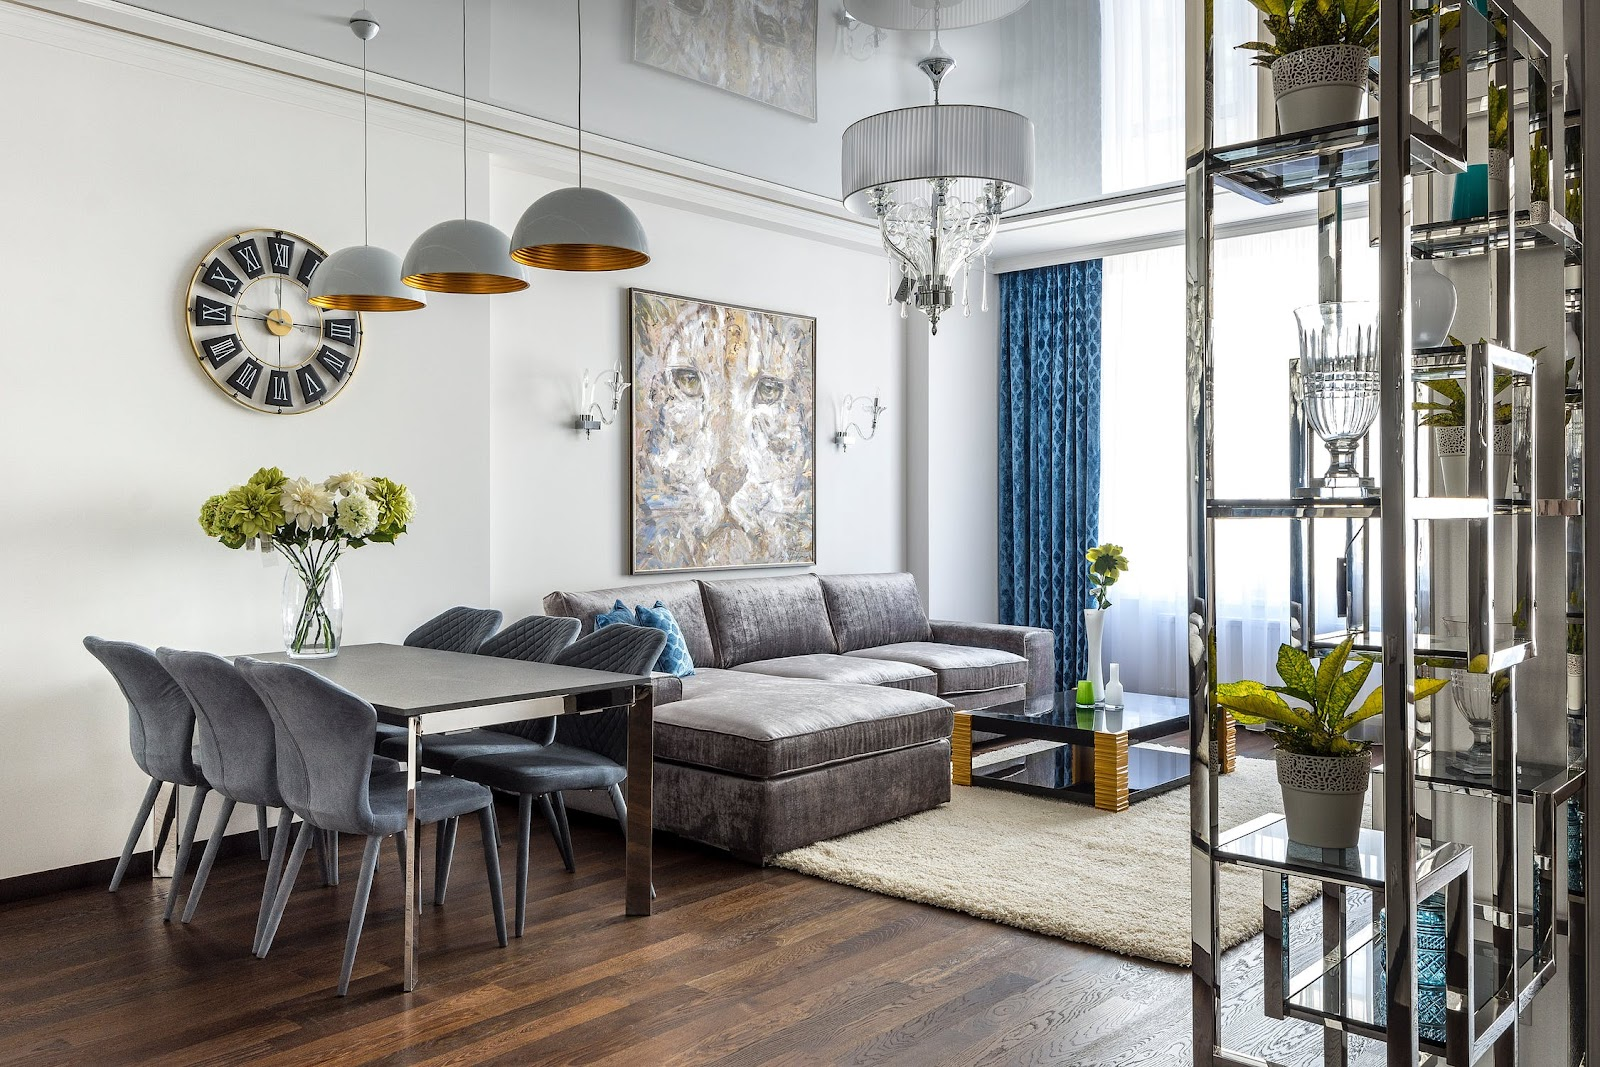 Chic condo with rug